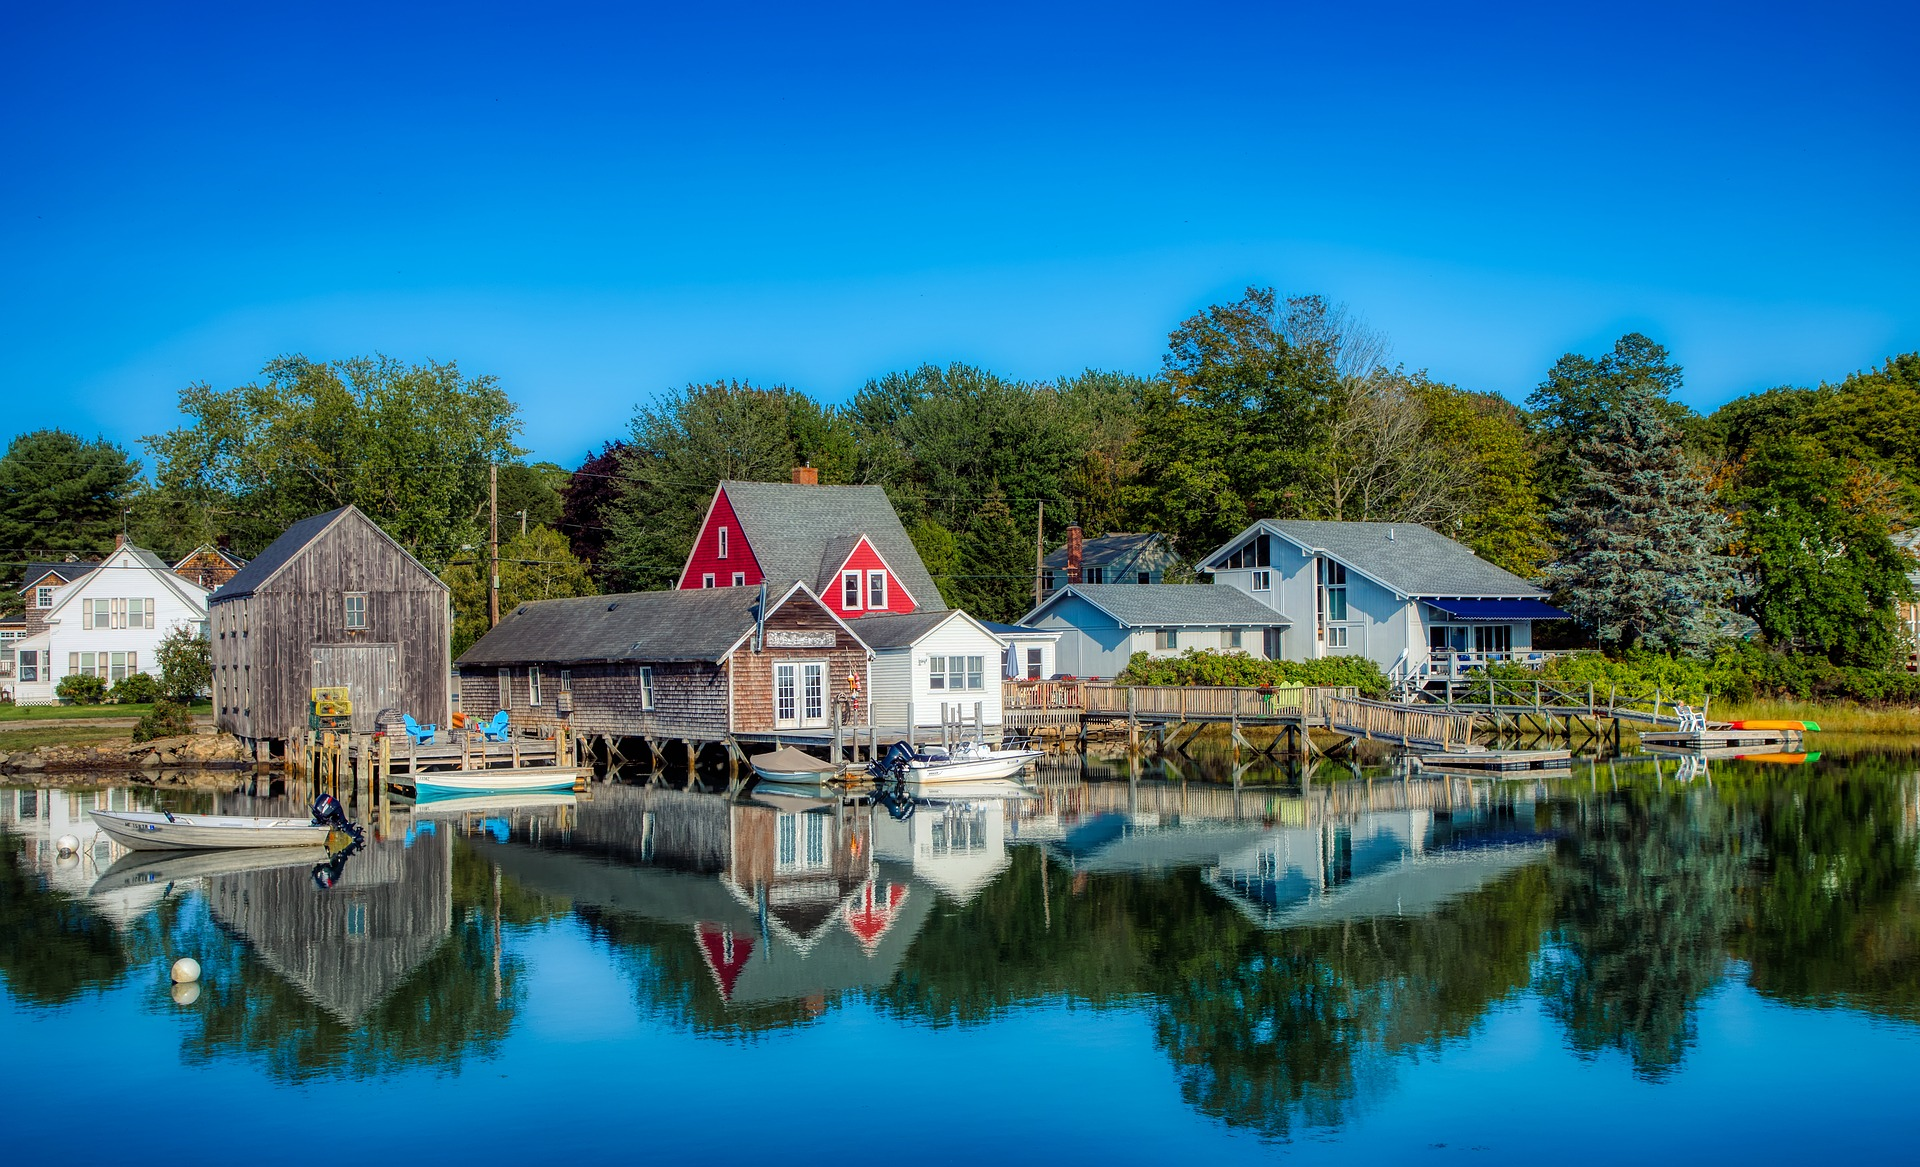 Small houses — including a red, gabled house — reflected on the water.